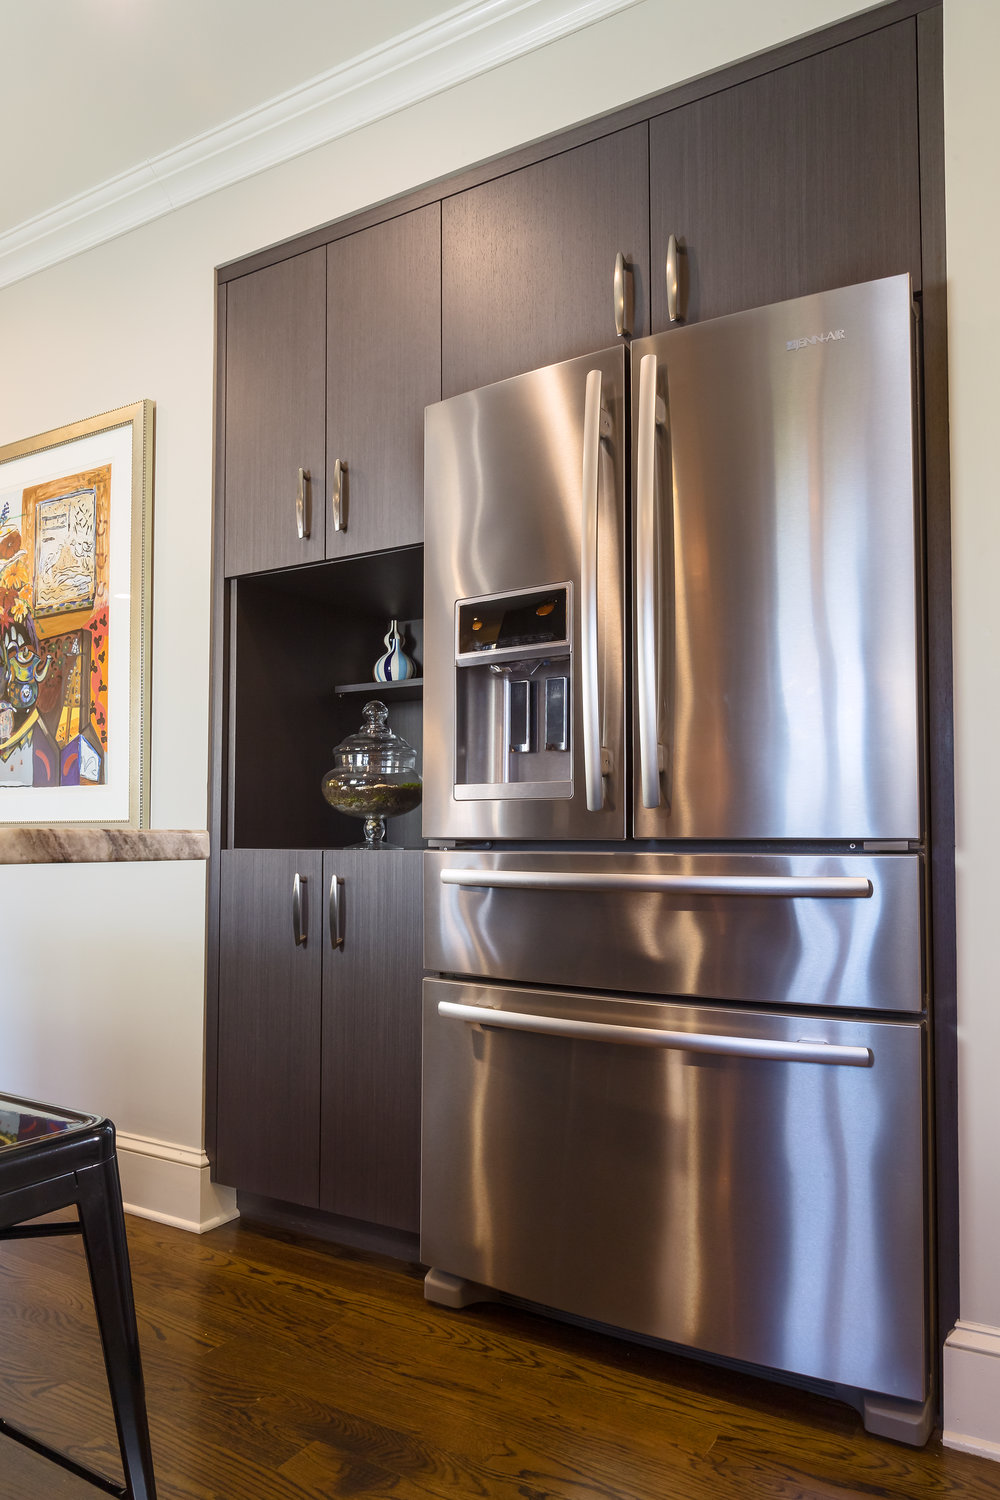 Contemporary style kitchen with a stainless steel refrigerator